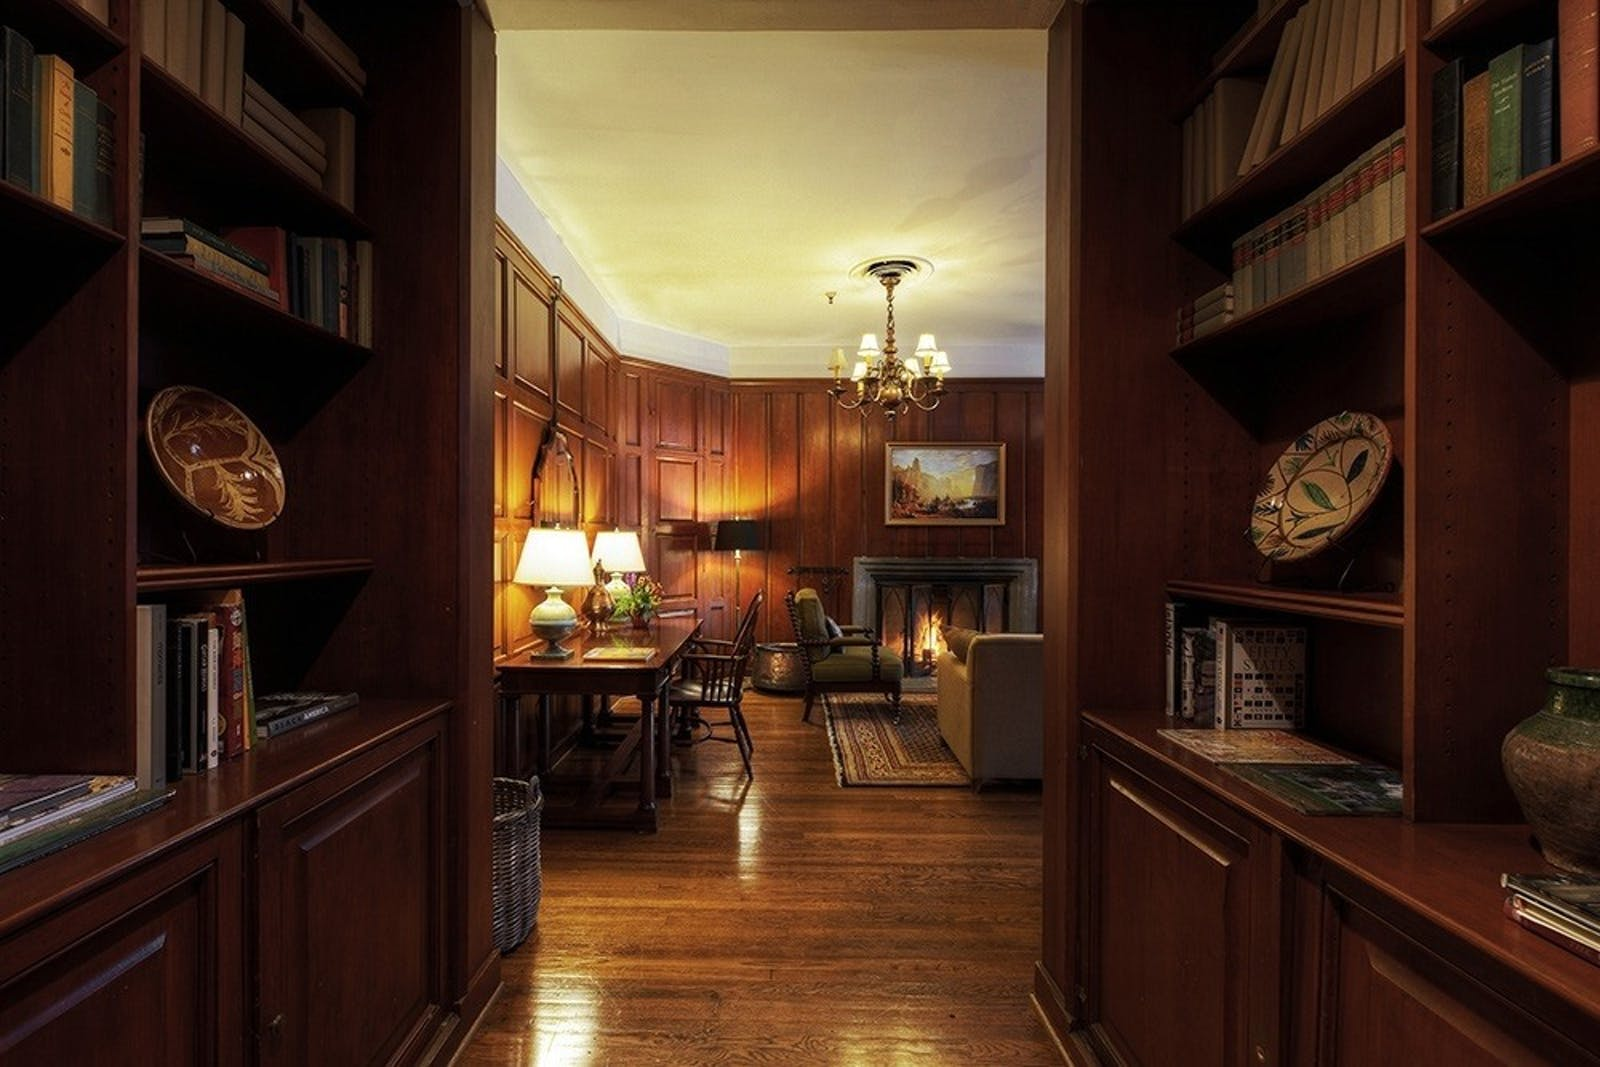 Library Suite at Majestic Yosemite Hotel, California